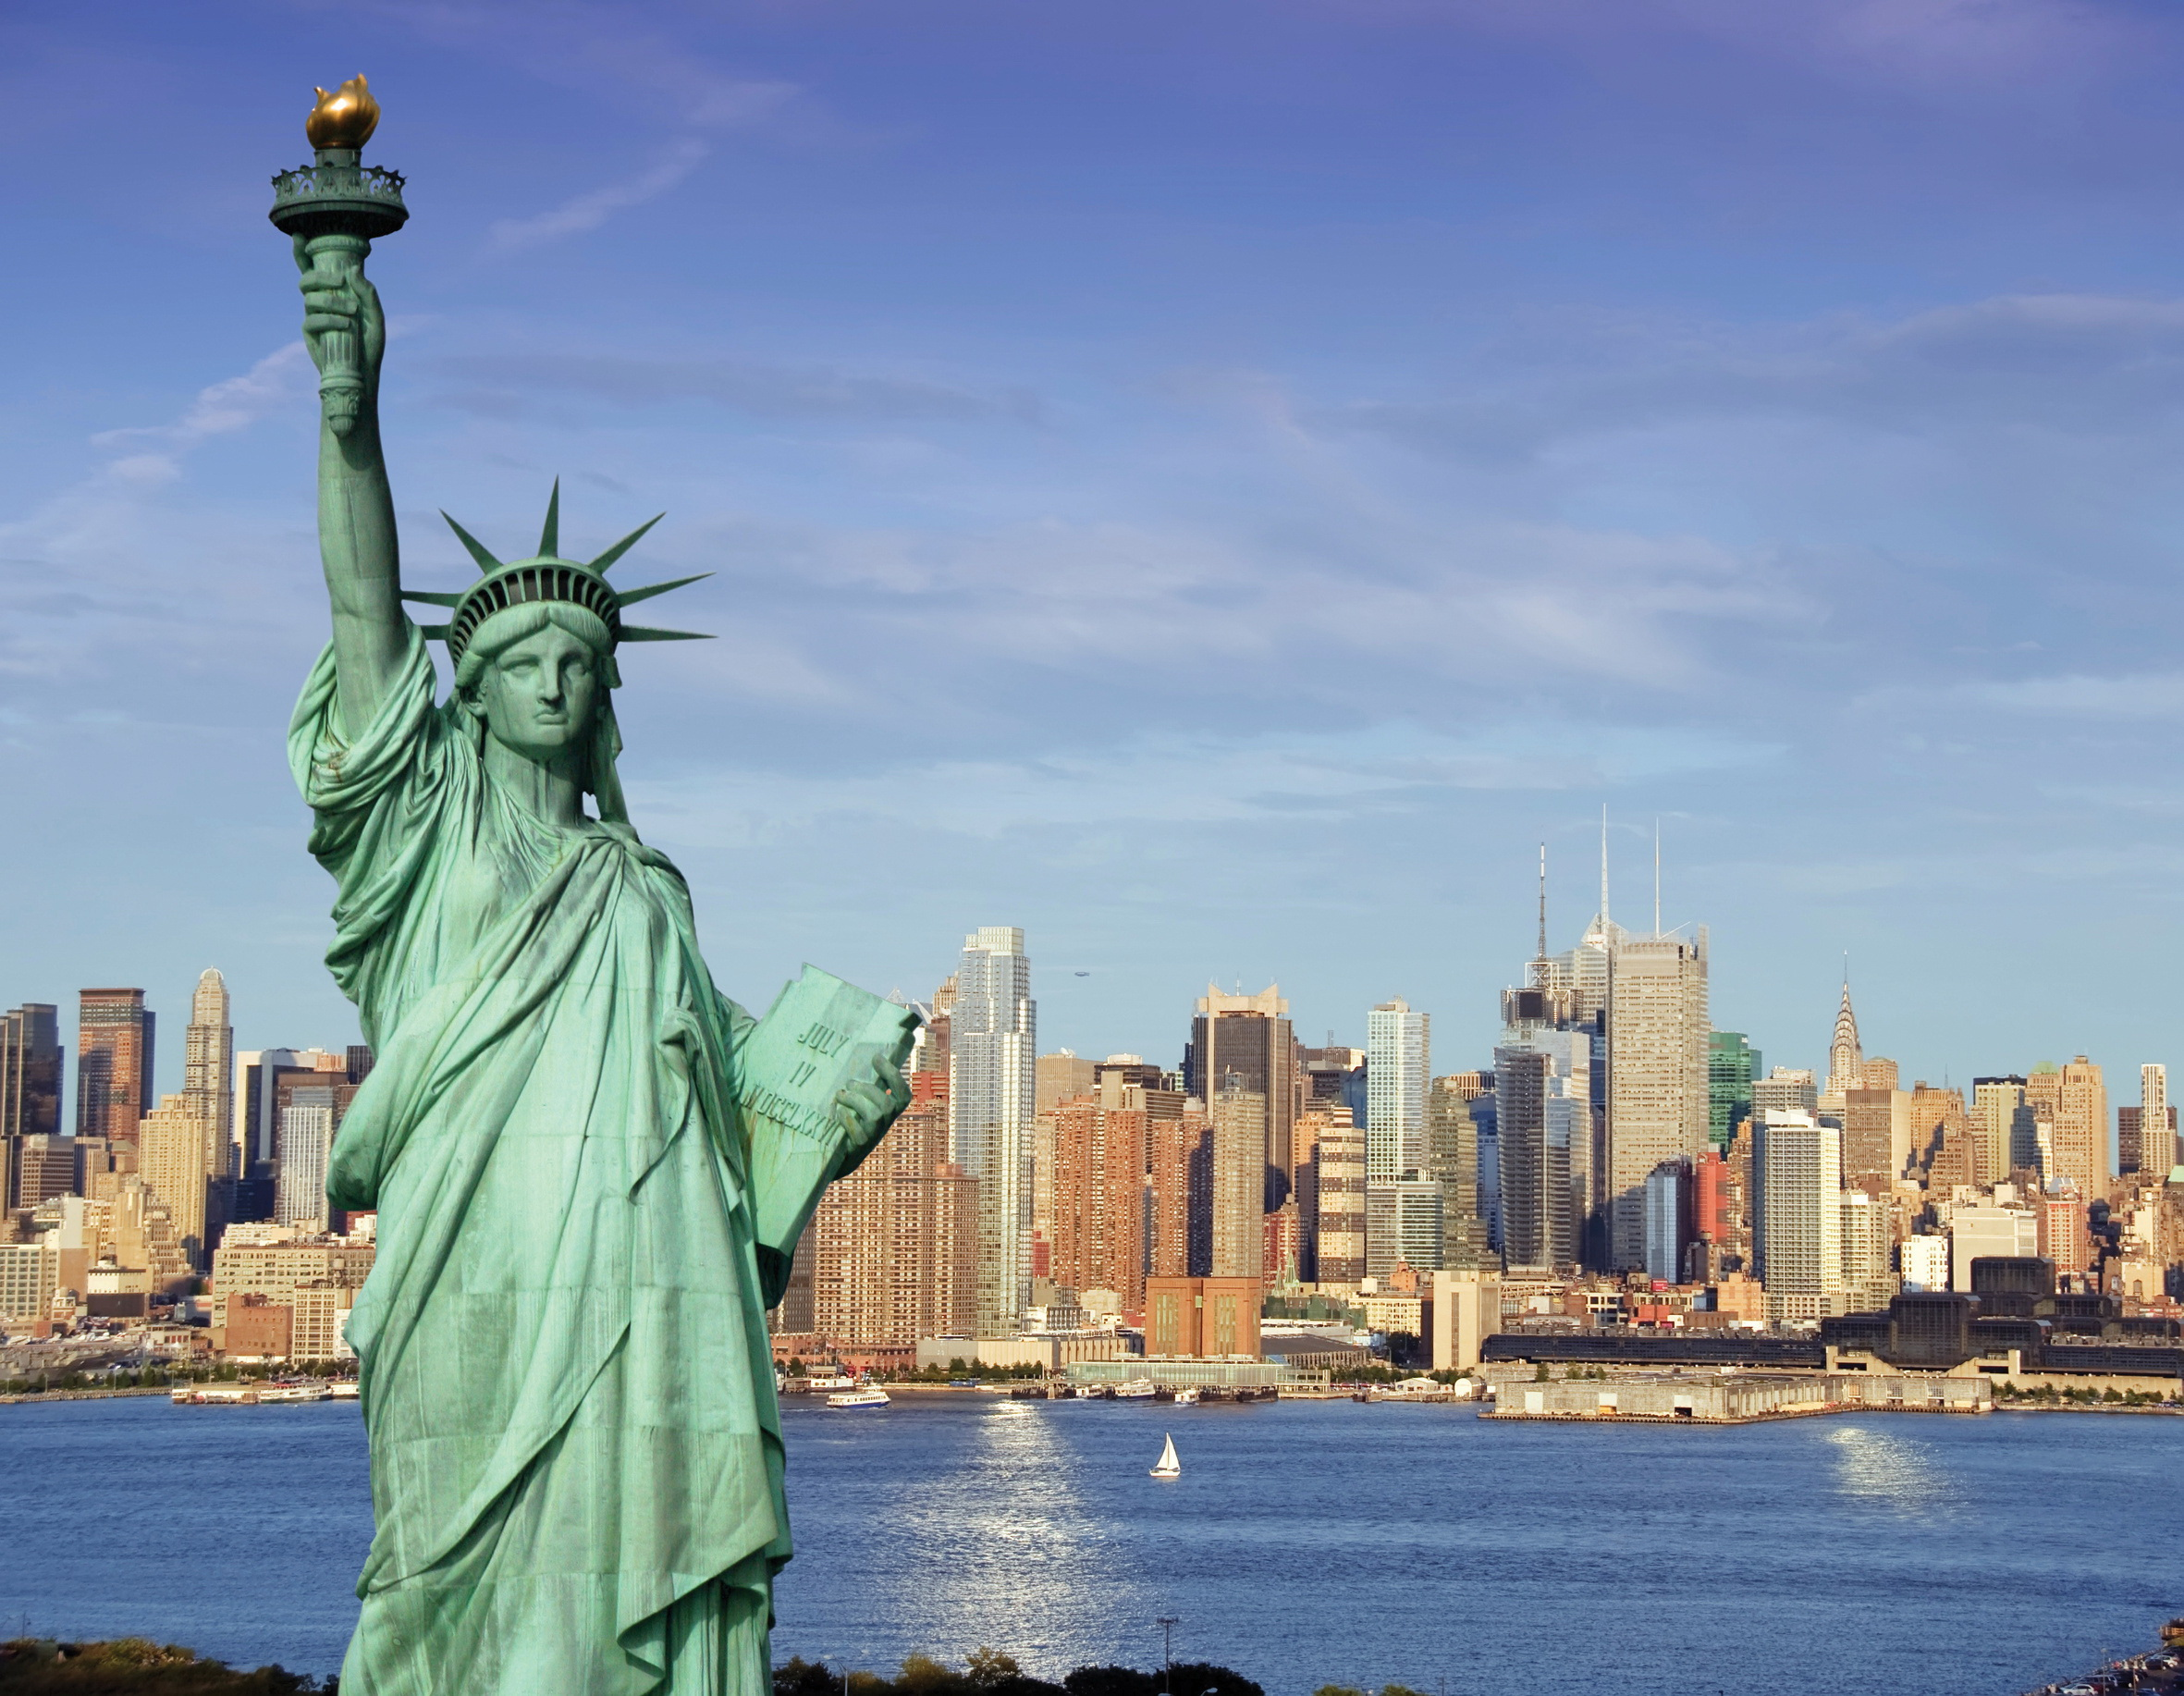 Free Download Statue Of Liberty Wallpaper 33436 Hd Wallpapers